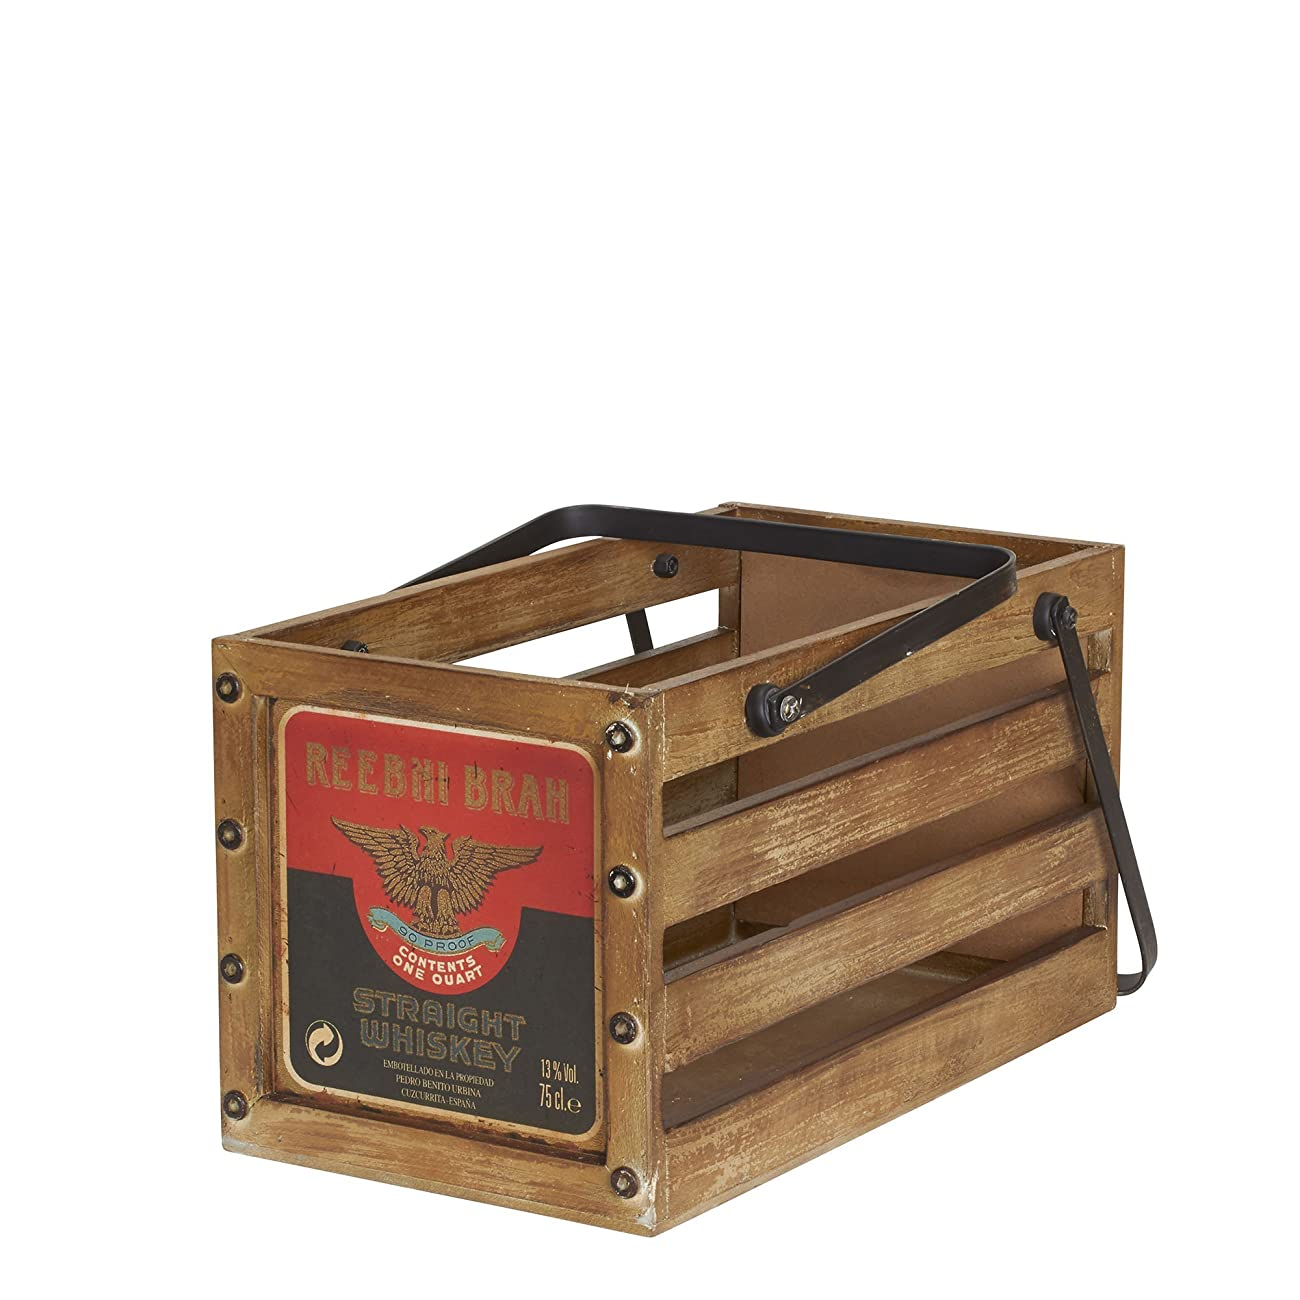 Household Essentials Whiskey Design Decorative Wood Crate for Storage, Small, Brown 1